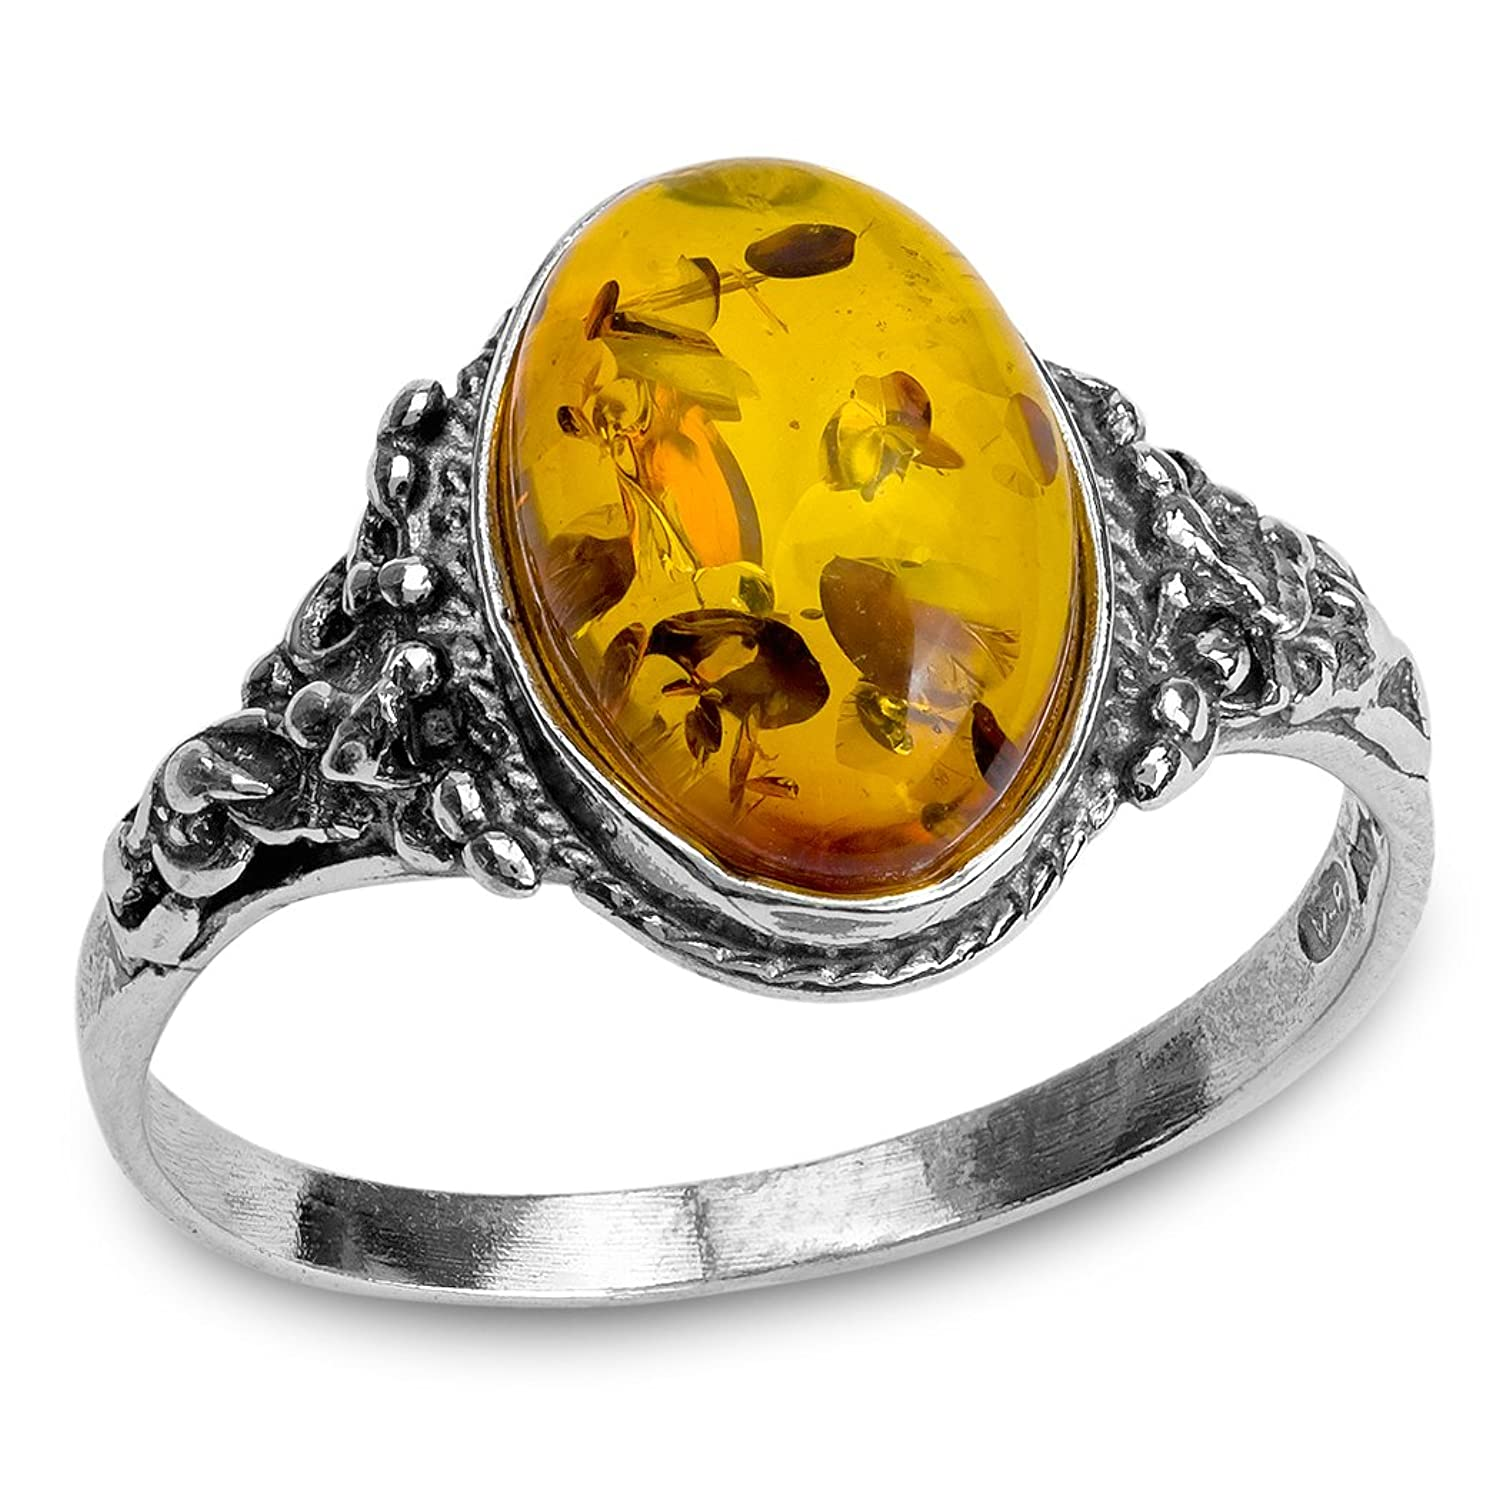 ring rings model and diamond printable models stl vintage amber jewelry engagement citrine print